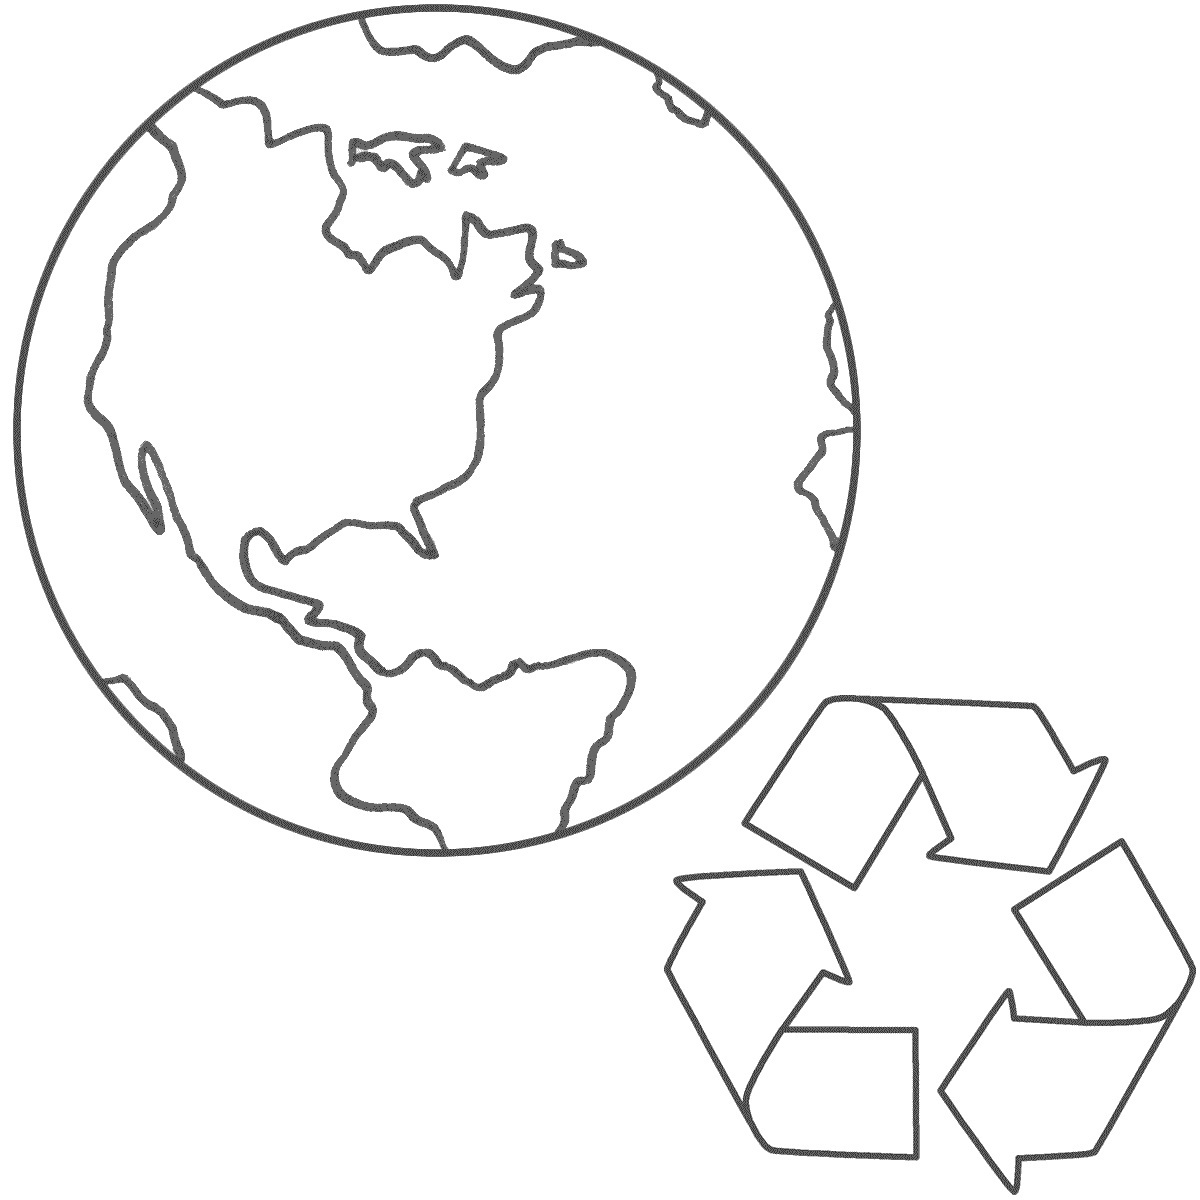 earth coloring sheet get this printable earth coloring pages online gvjp11 coloring sheet earth